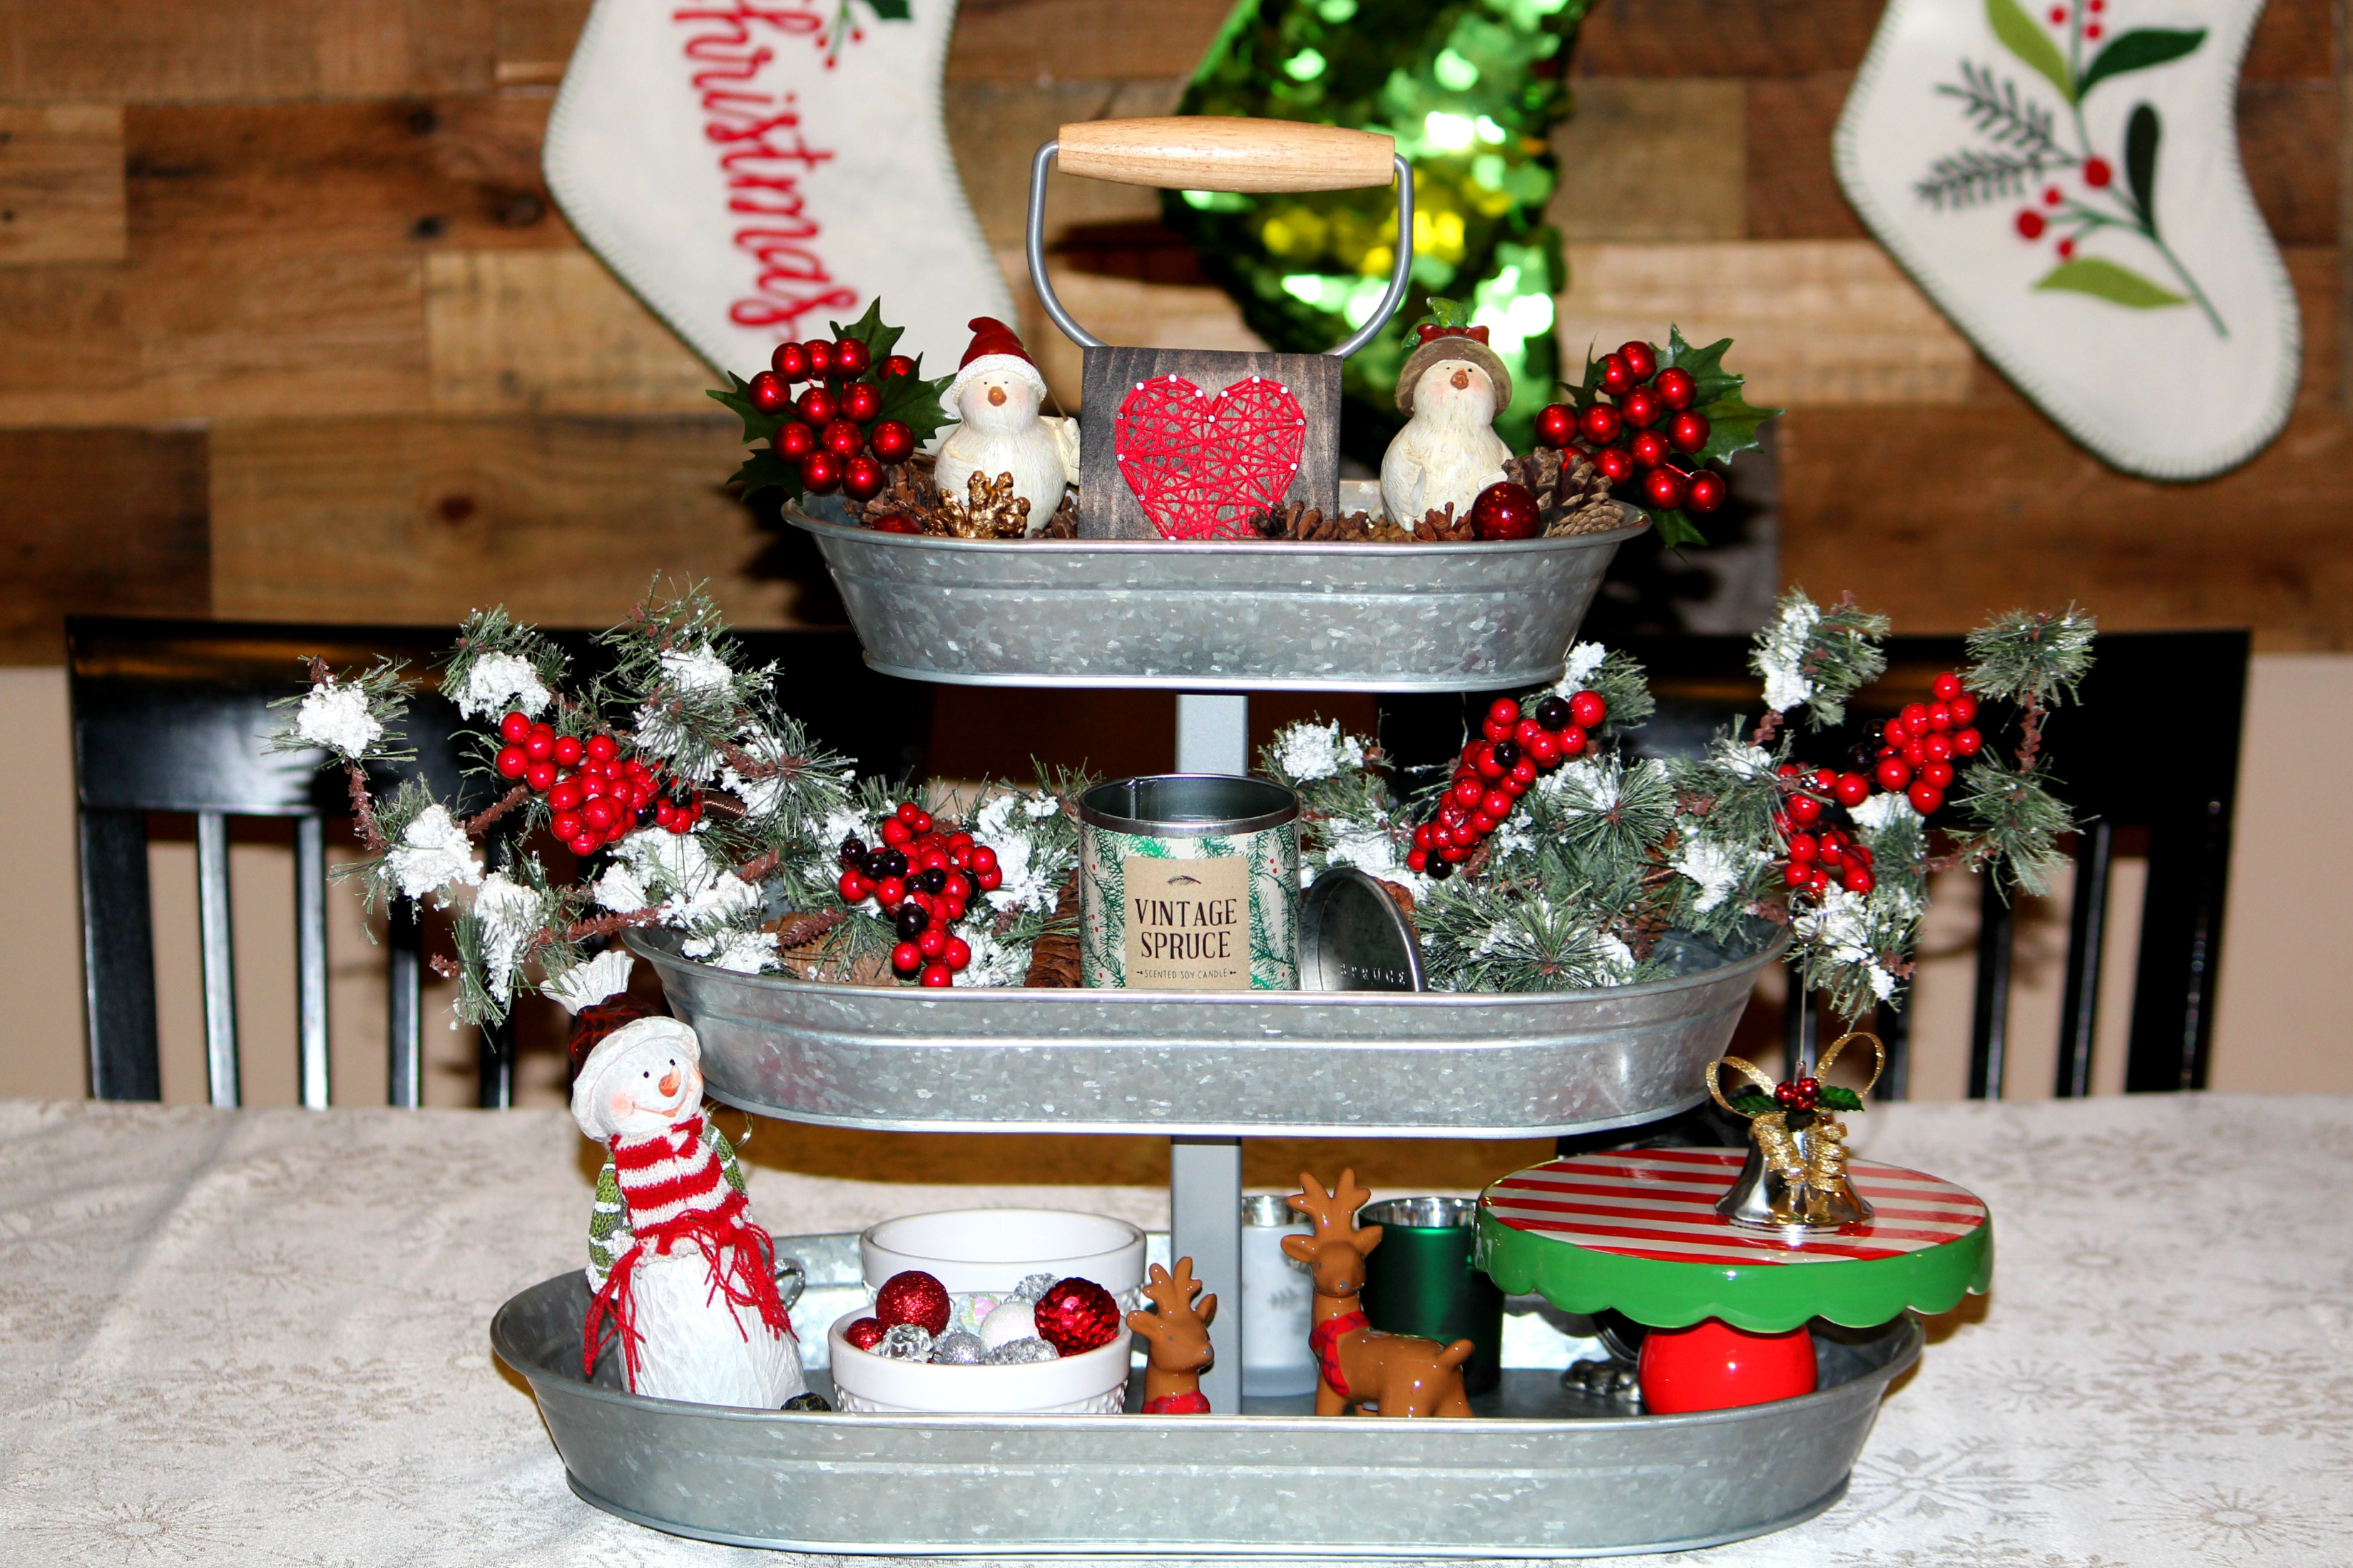 Christmas Galvanized Tray Decor Ellery Designs